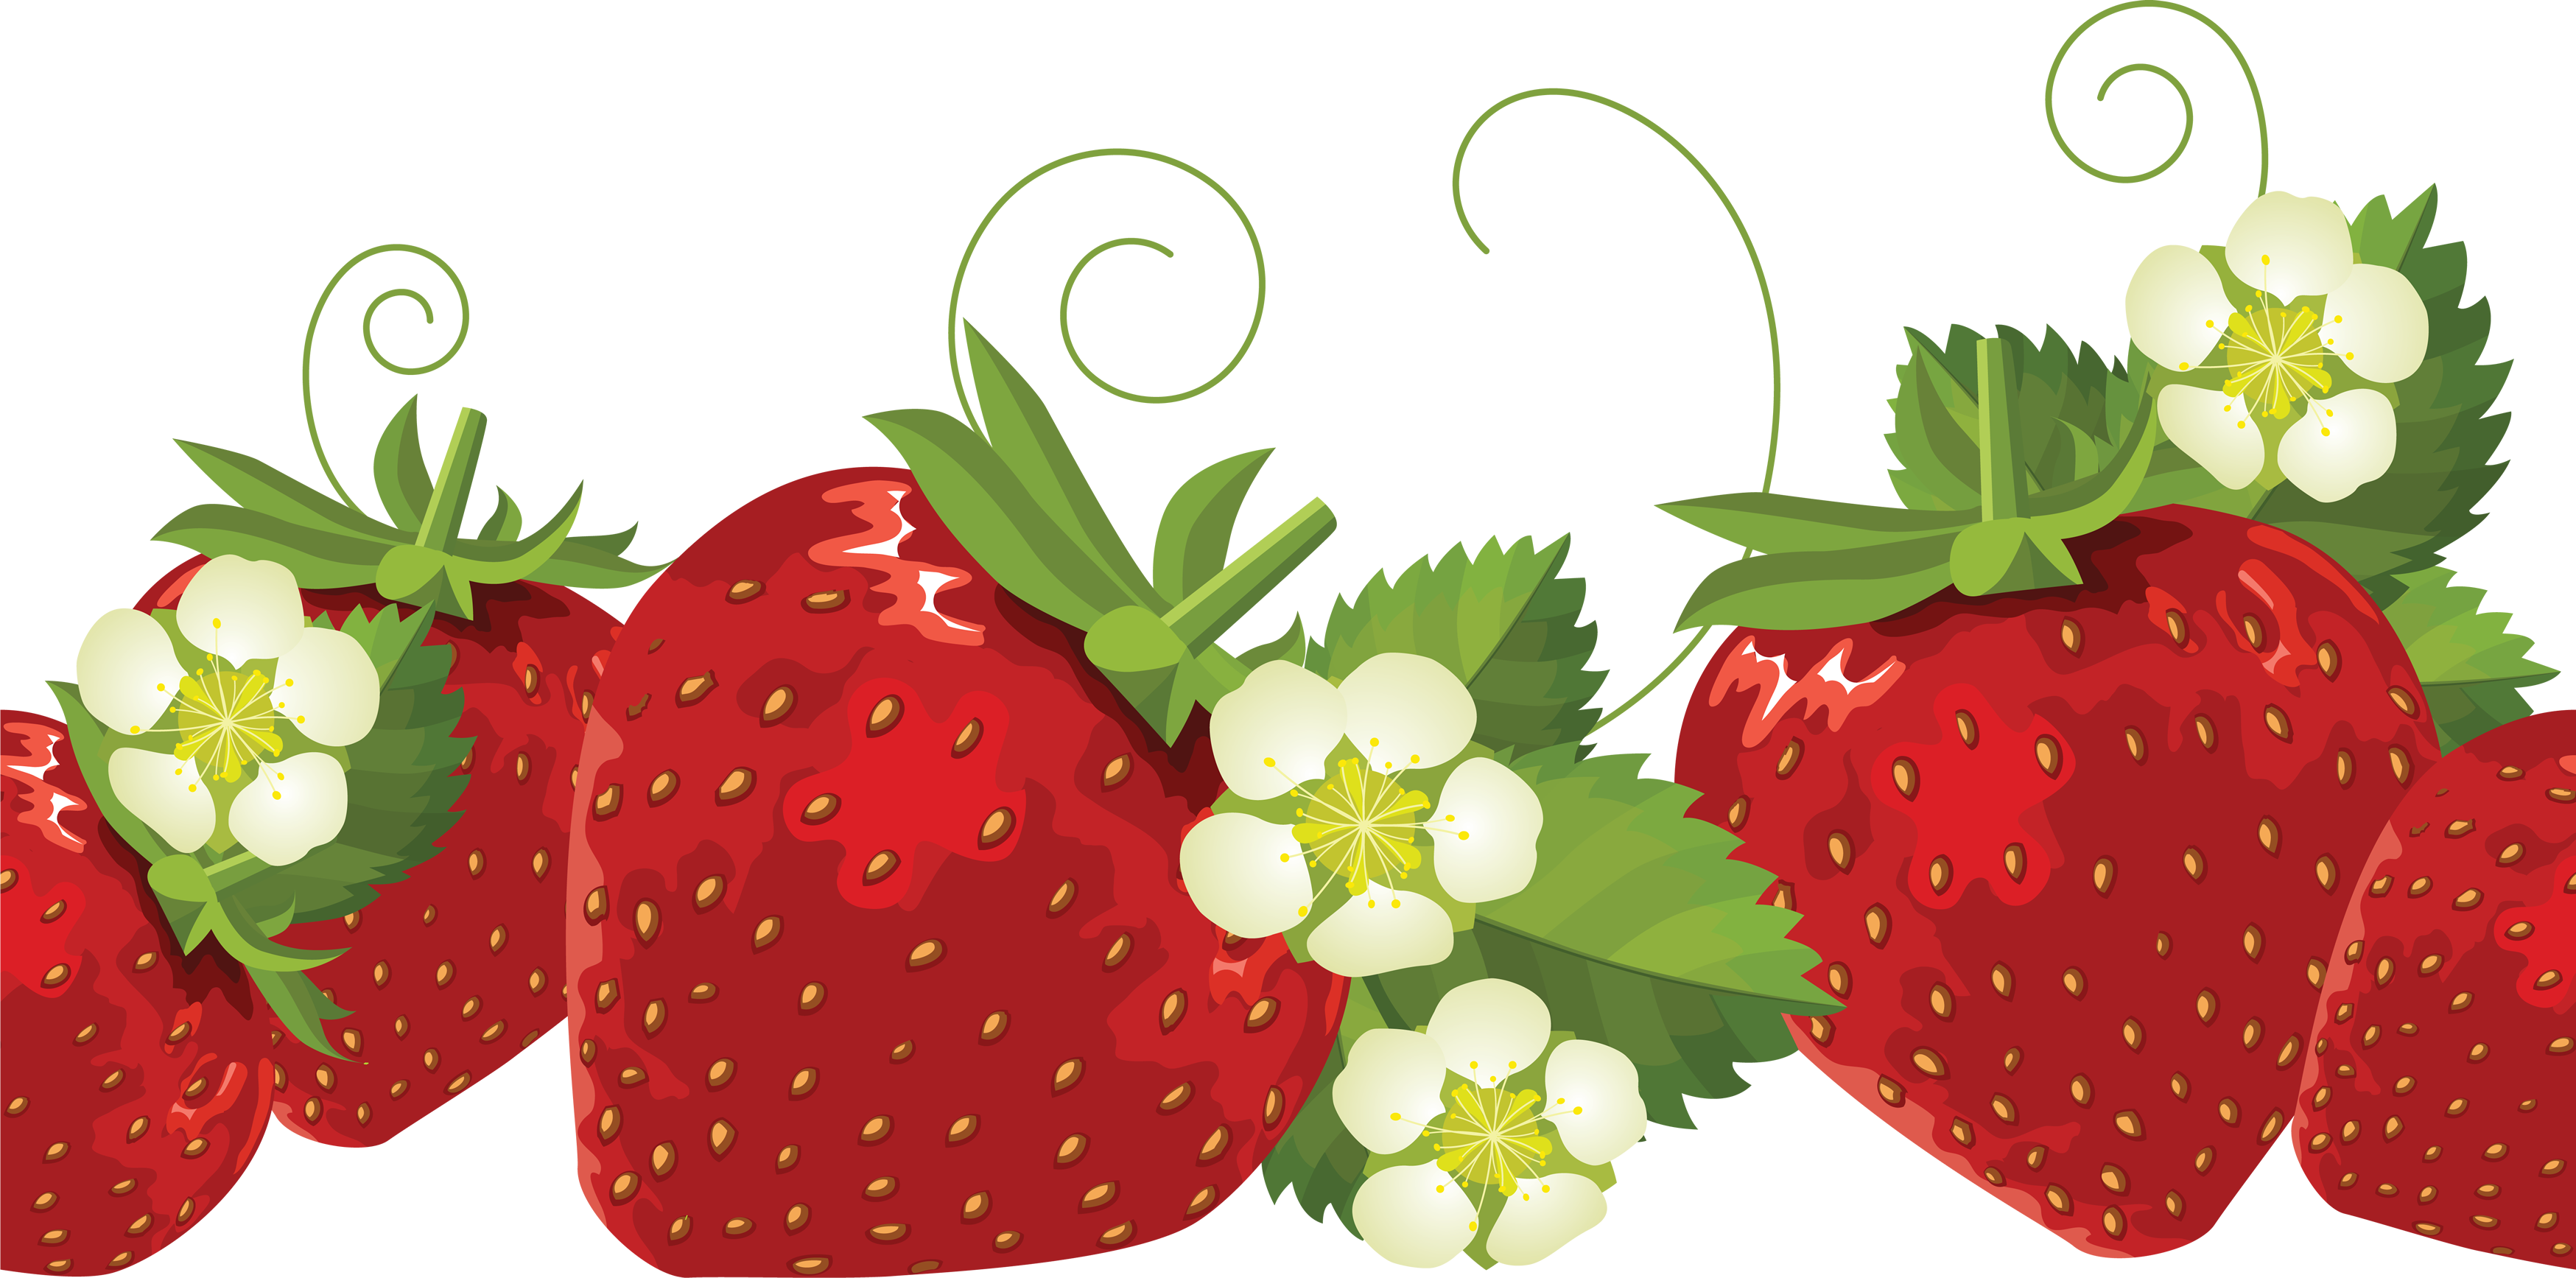 Strawberries clipart strawberry flower. Pin by kushalagarwal on